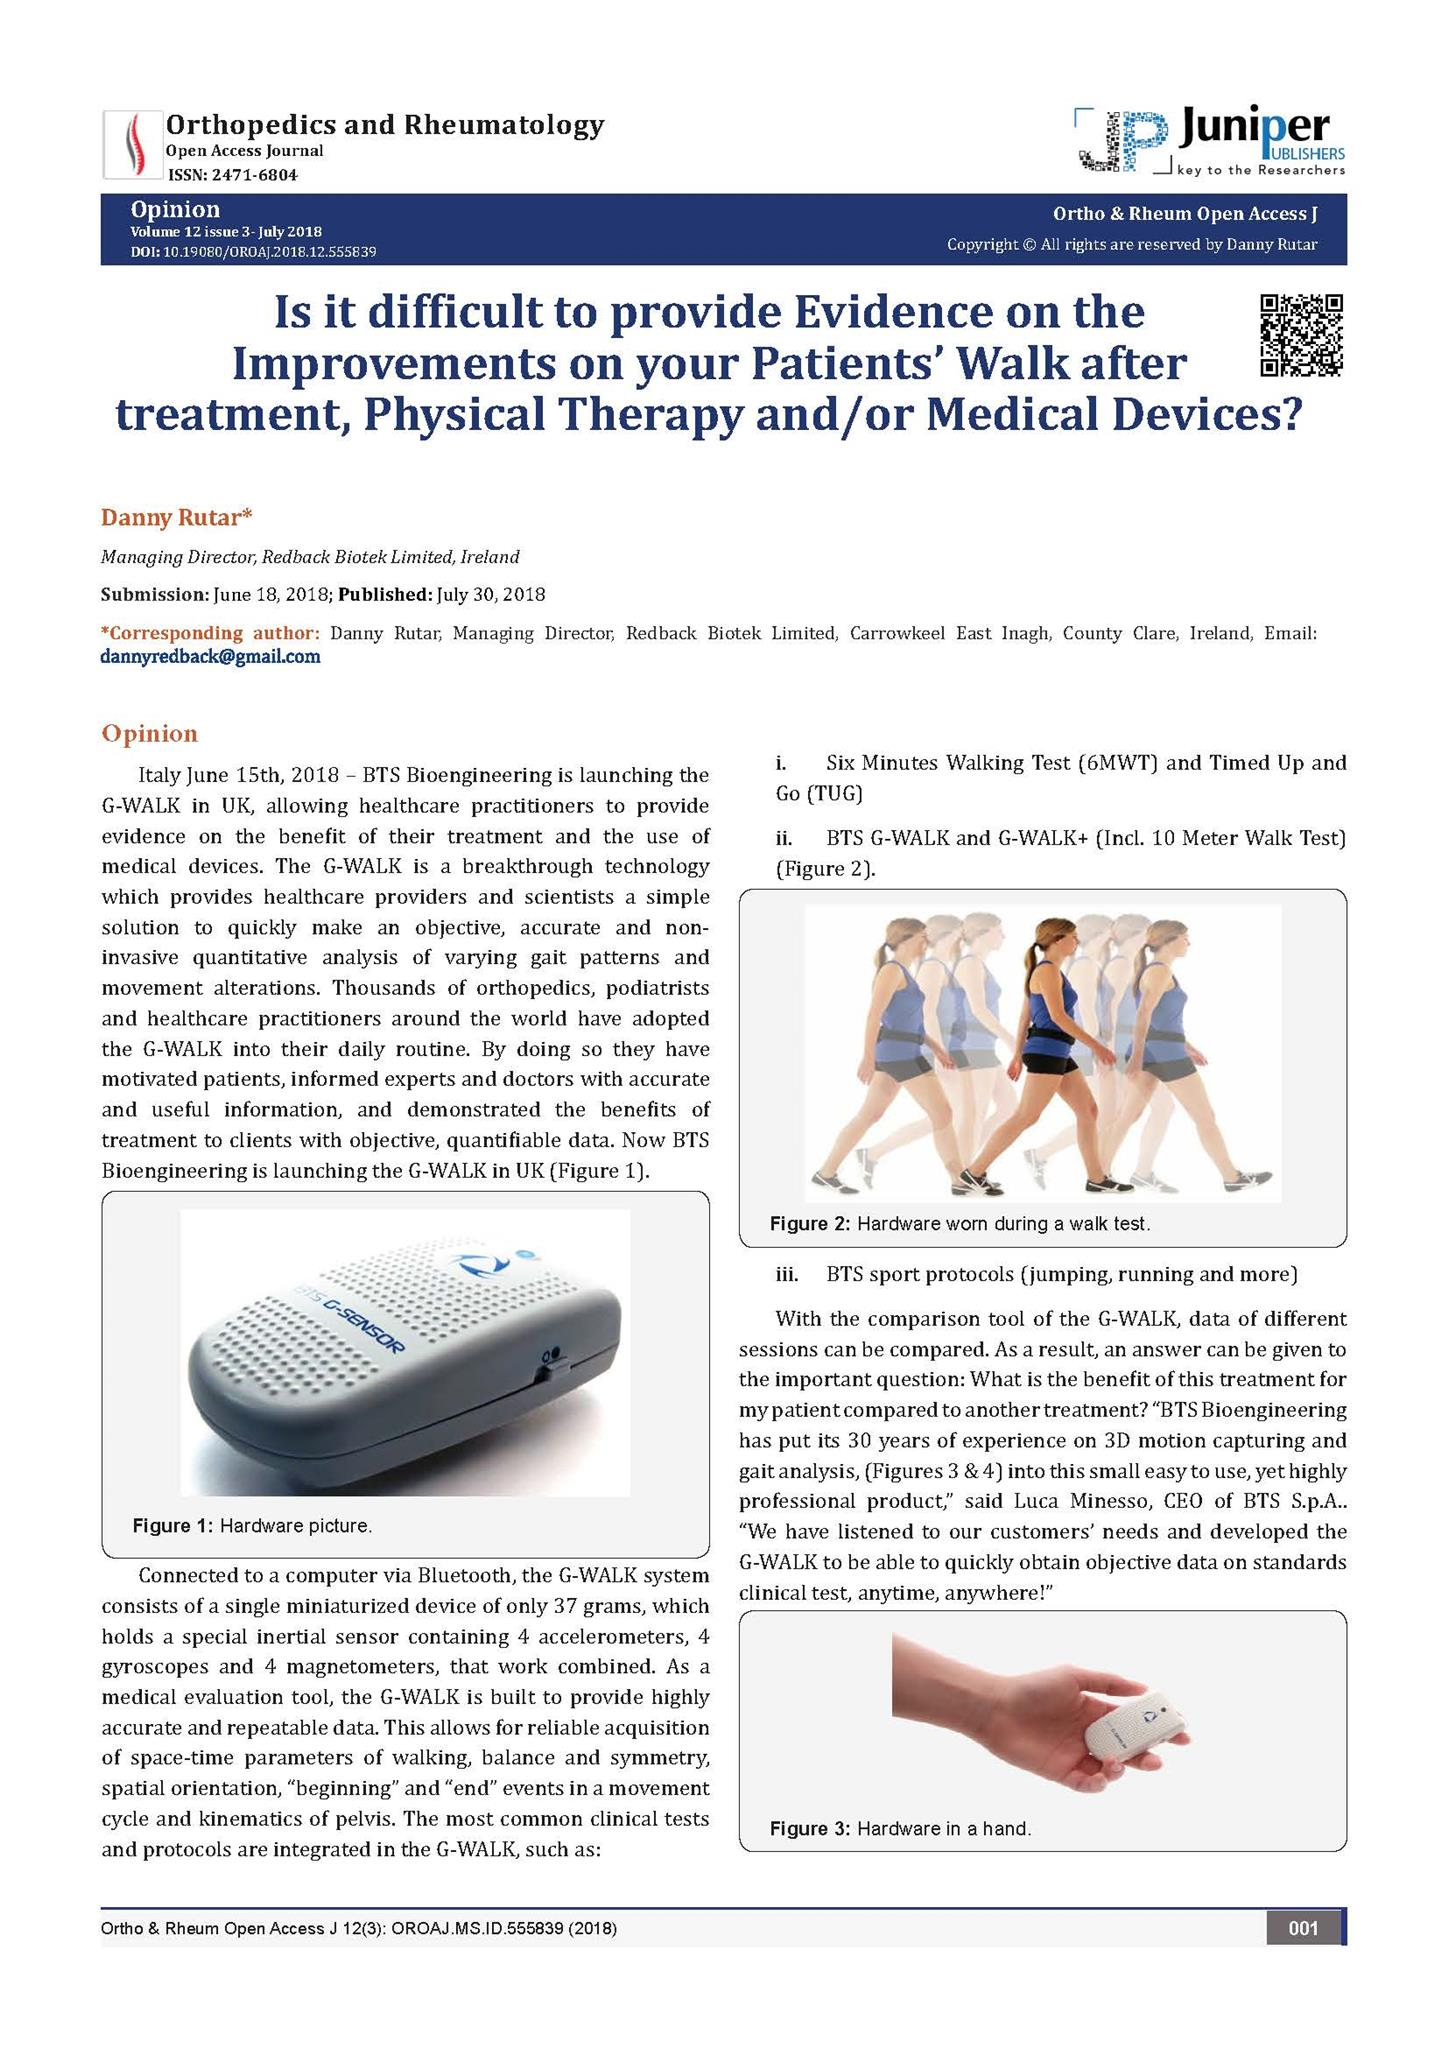 G Walk Presented In The Orthopedics And Rheumatology Scientific Review News Events Bts Bioengineering